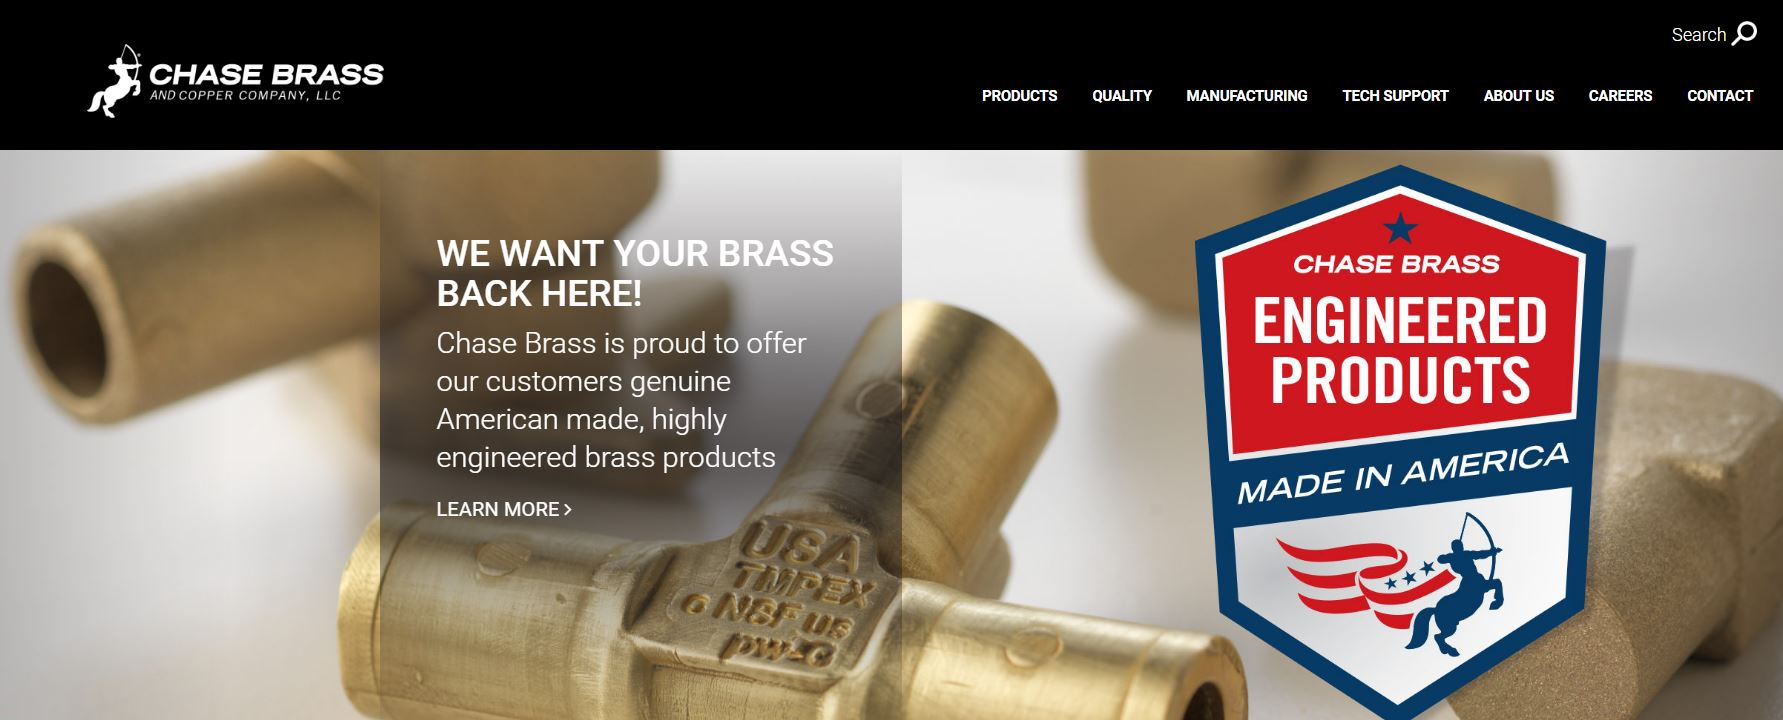 Chase brass and copper company addition turner construction company - Capabilities Services